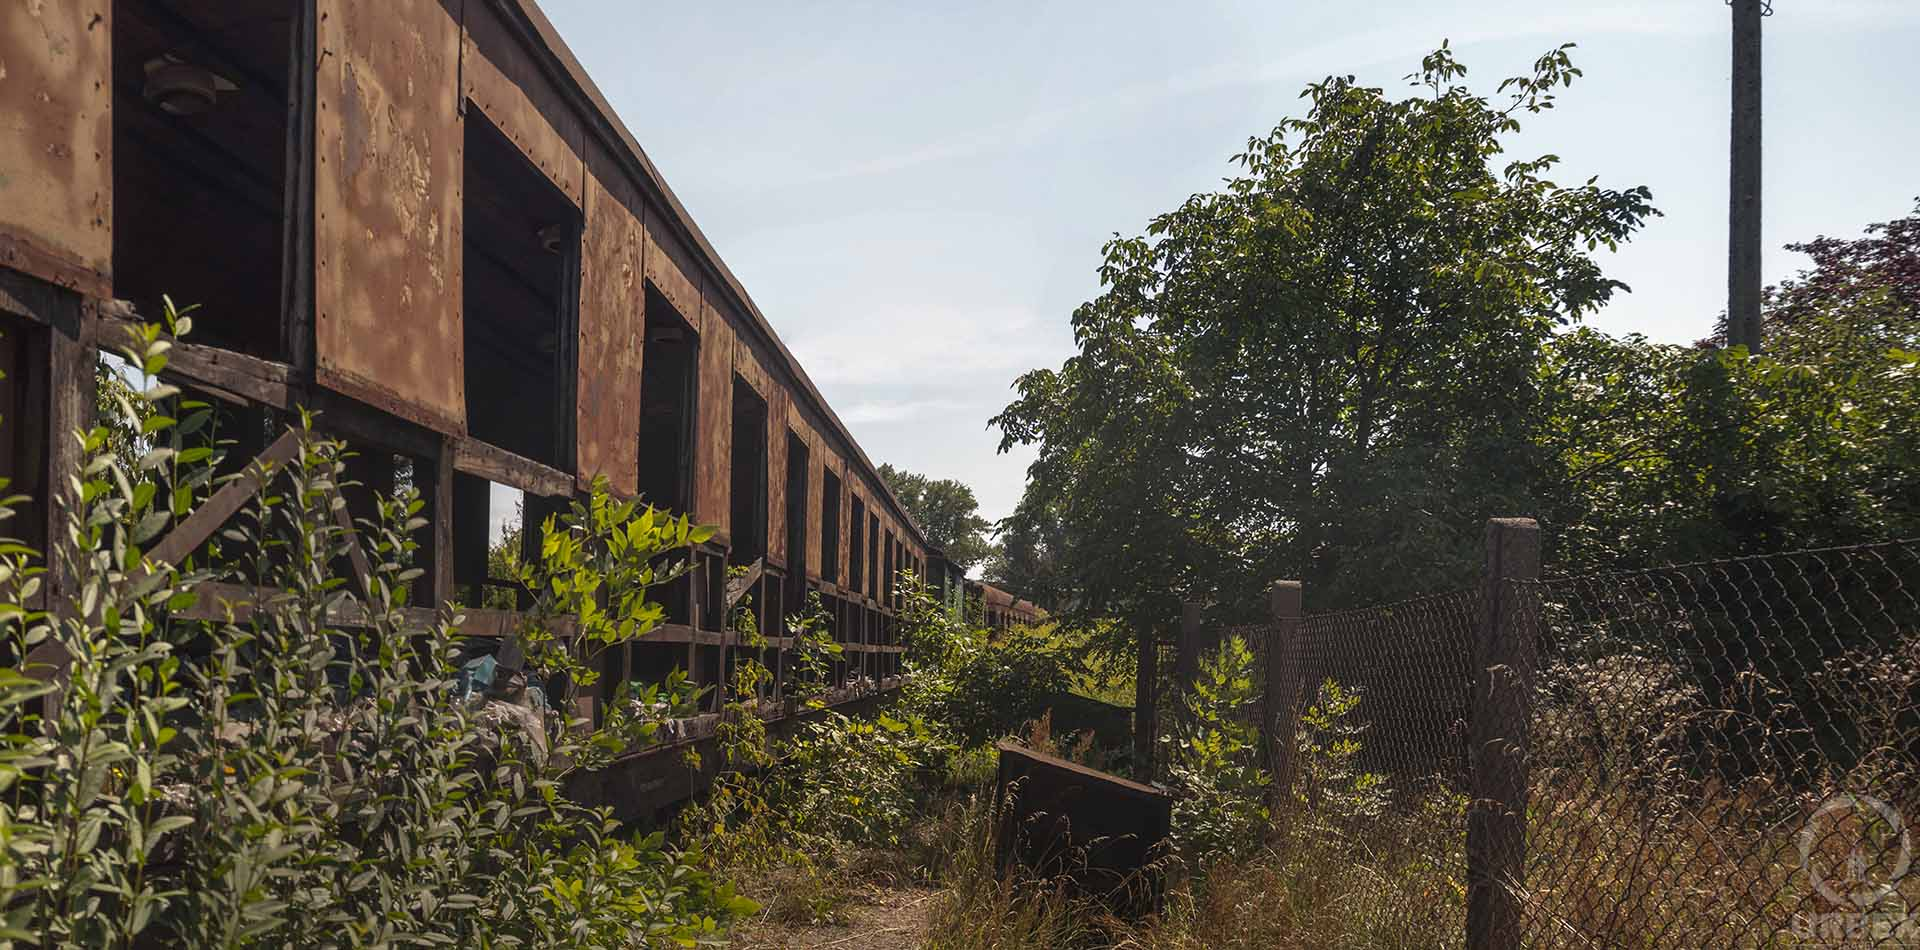 a graveyard of old trains in Poland